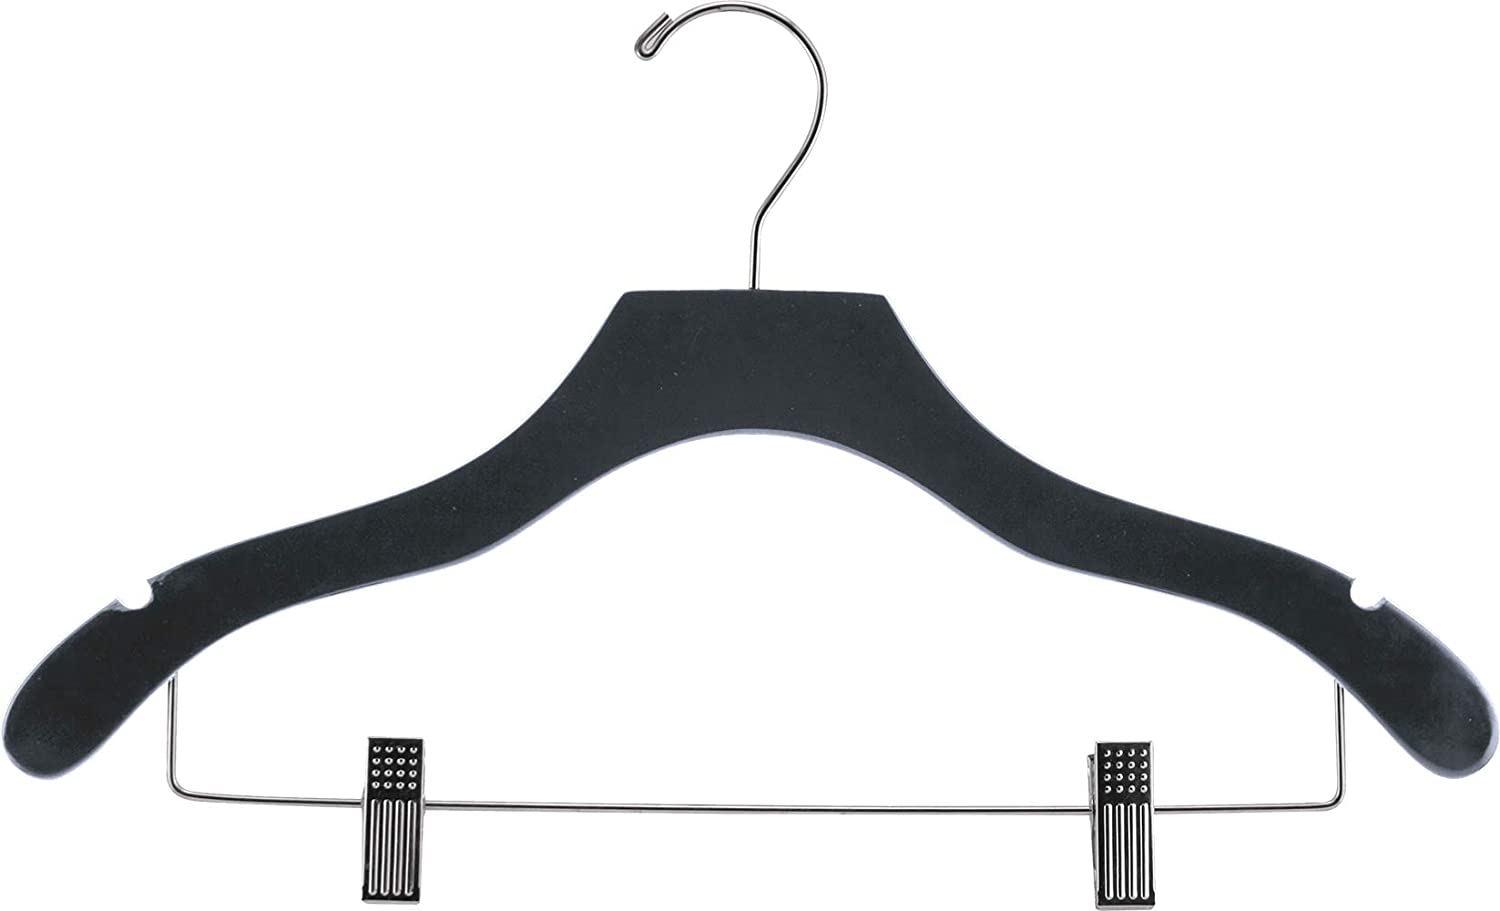 The Great American Hanger Company Wooden Combo Black Finish Hanger With Clips And Notches Box Of 25